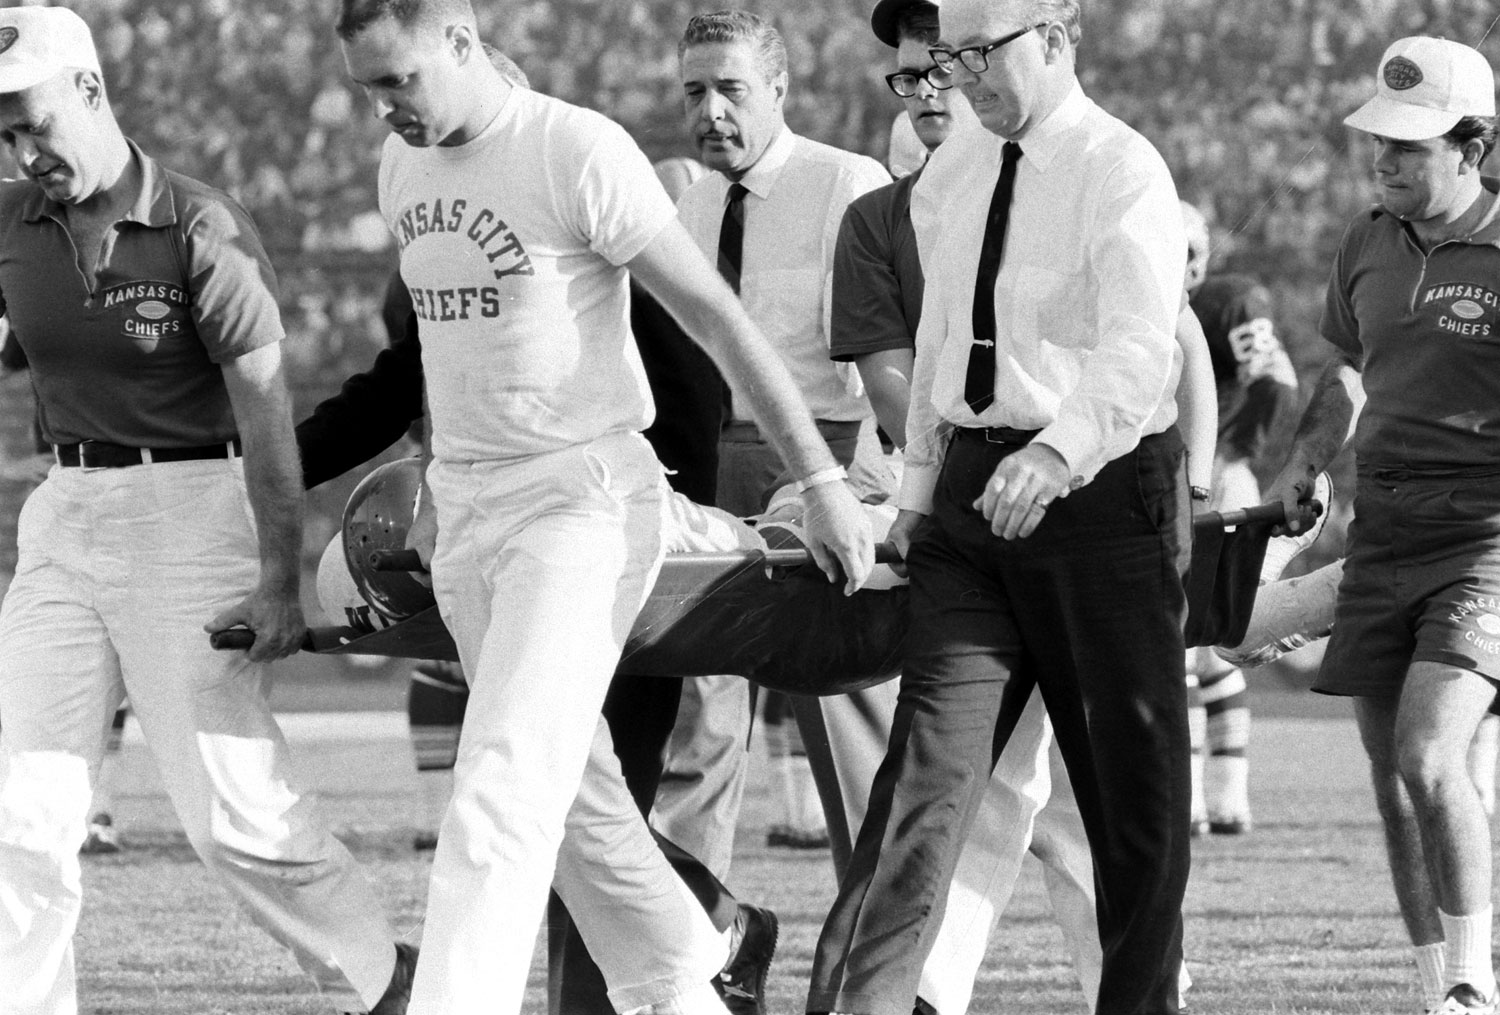 <b>Not published in LIFE.</b> Kansas City's injured Fred Williamson carried off the field, Super Bowl I, 1967.